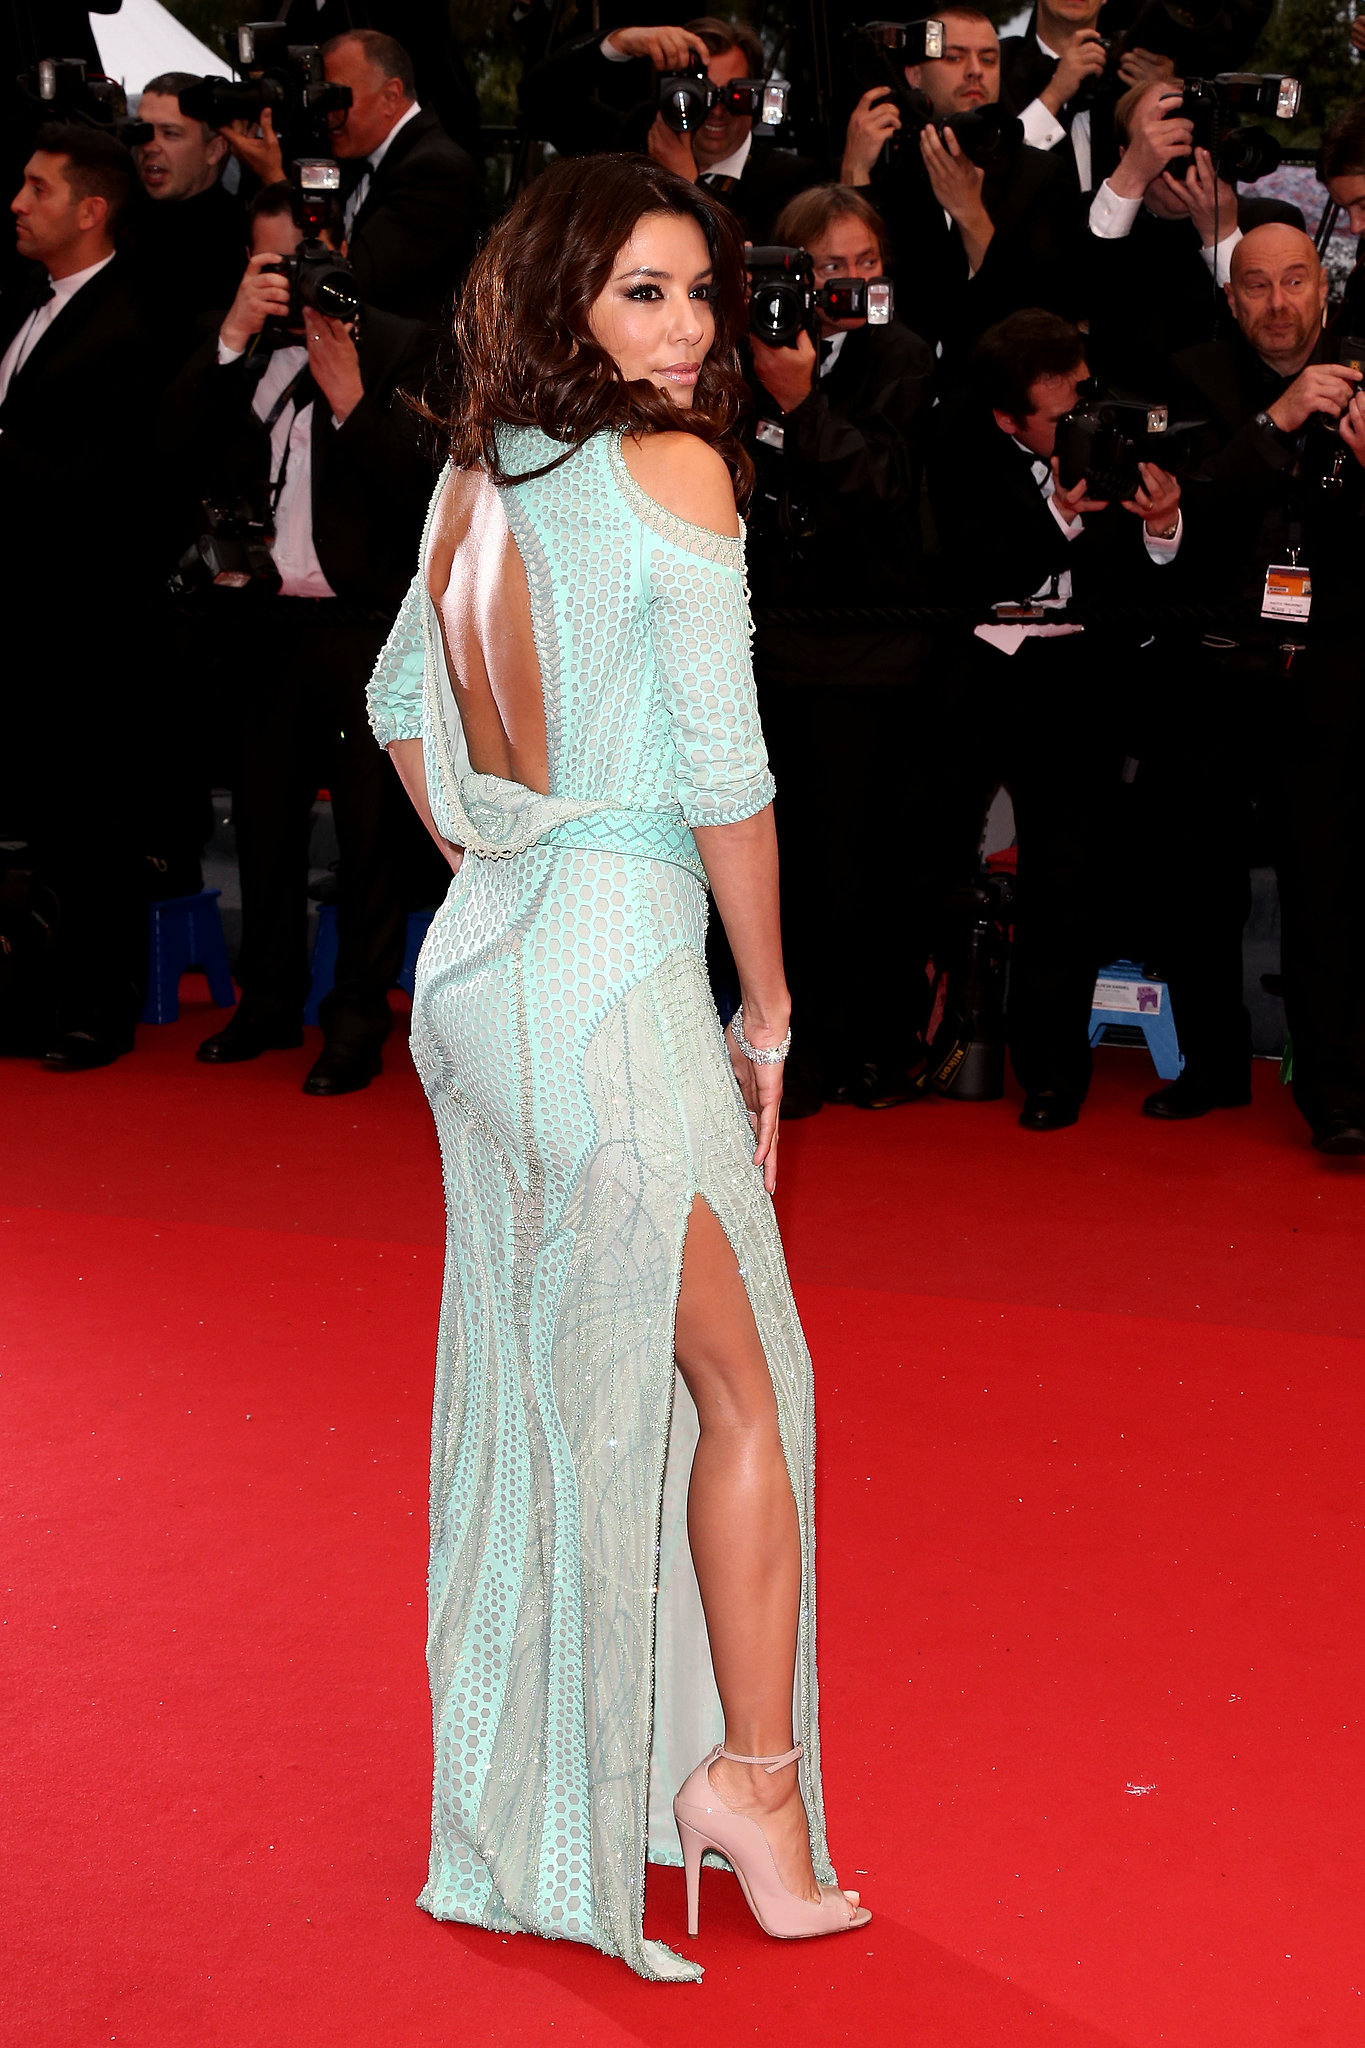 Eva Longoria wore a Versace Atelier gown to attend the premiere of Jimmy P. in Cannes.